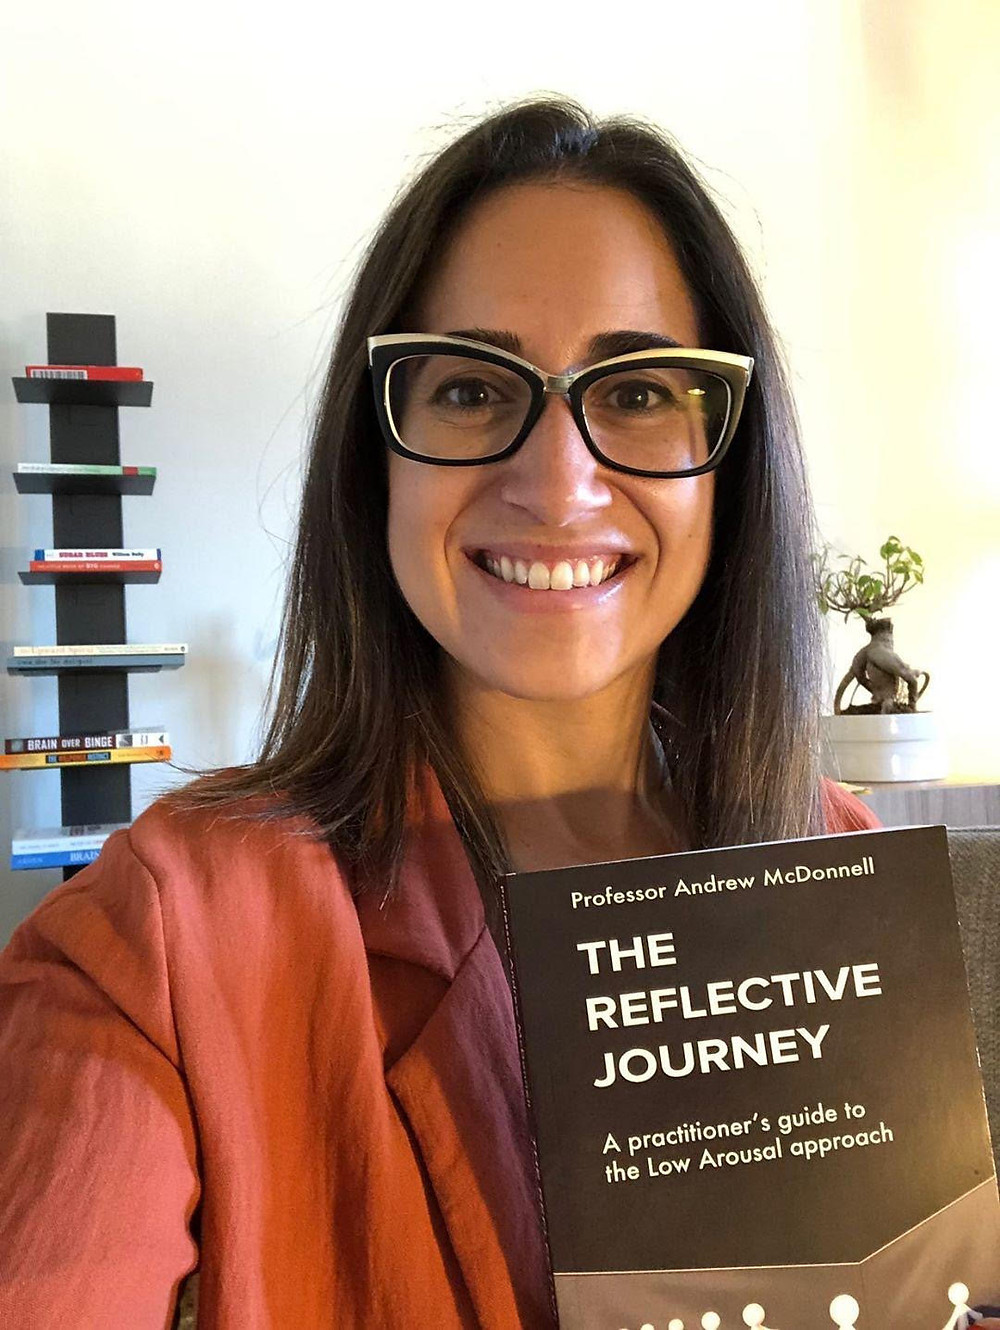 Sophia Algeria holding a copy of 'The Reflective Journey' by Professor Andrew McDonnell